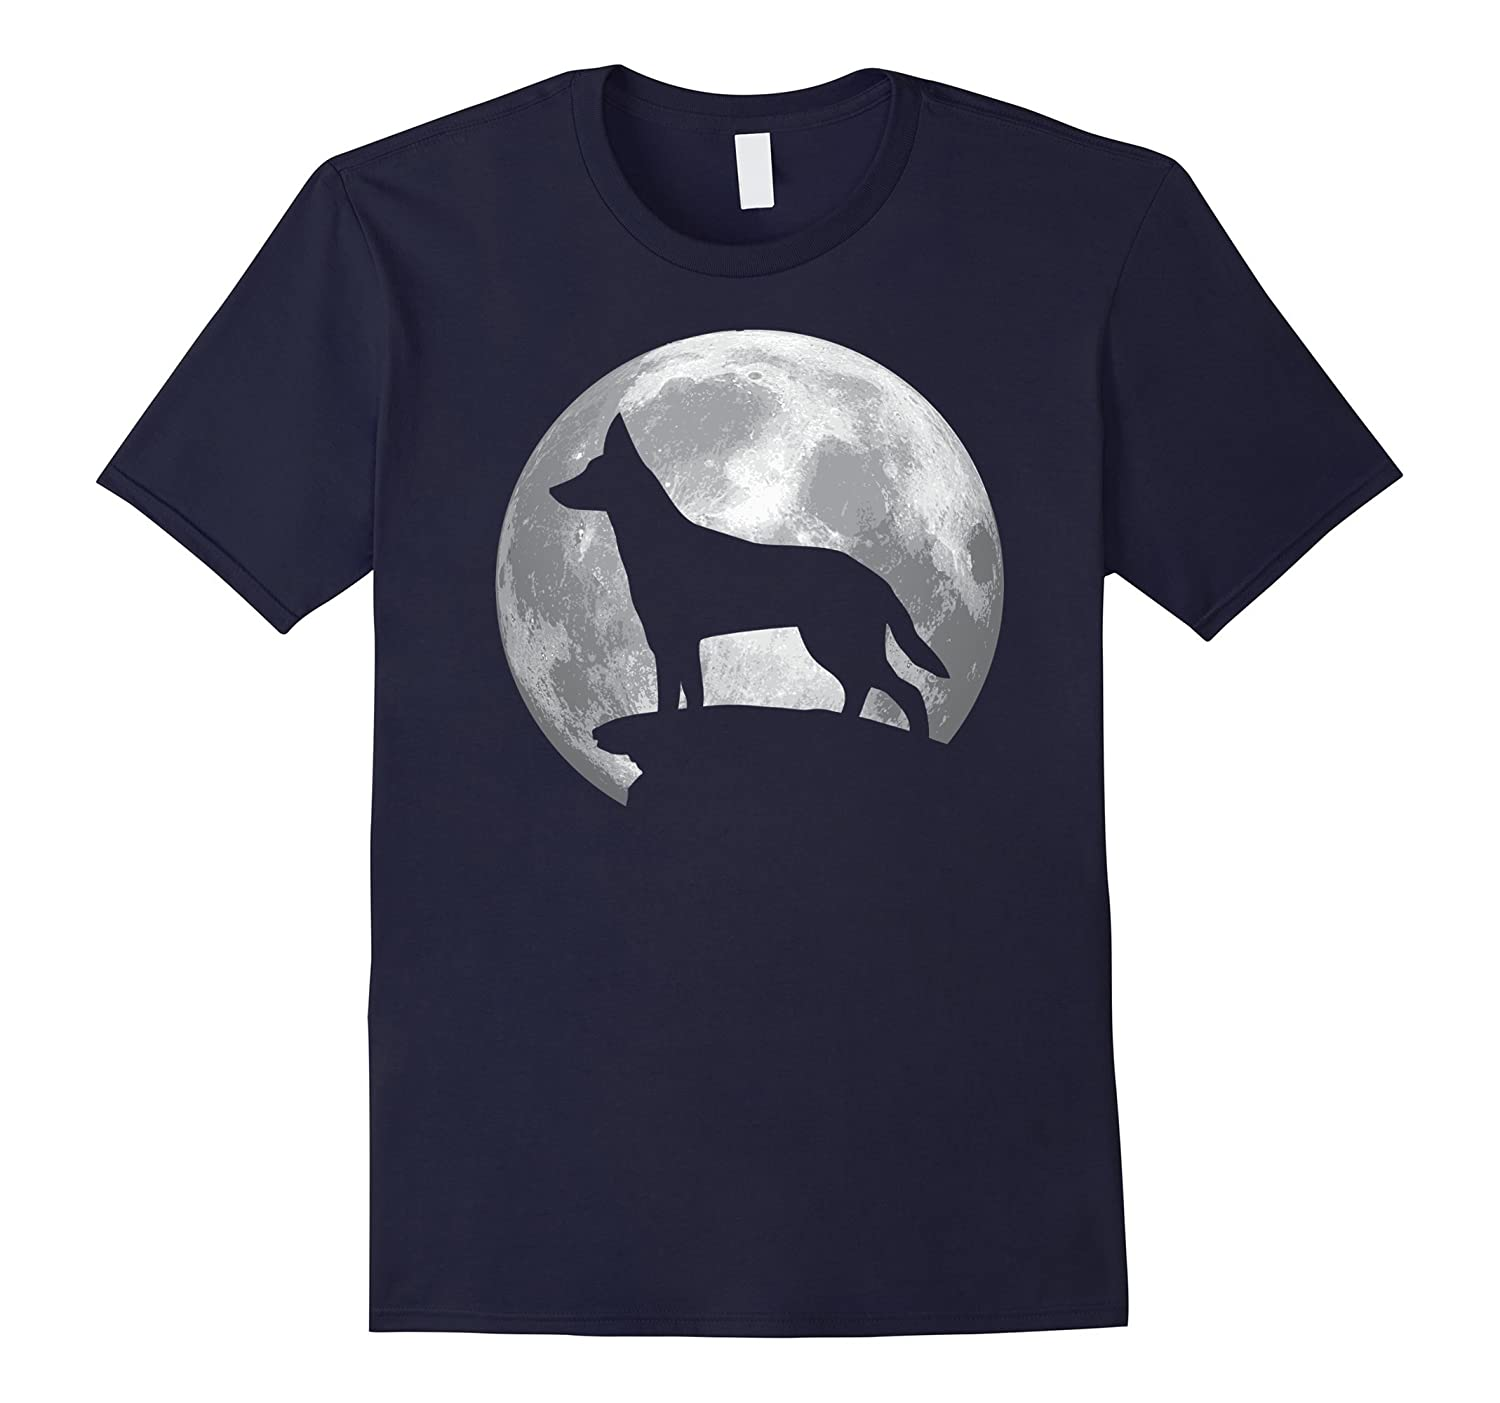 Dingo And Moon T-shirt For Dingo Lovers-Art